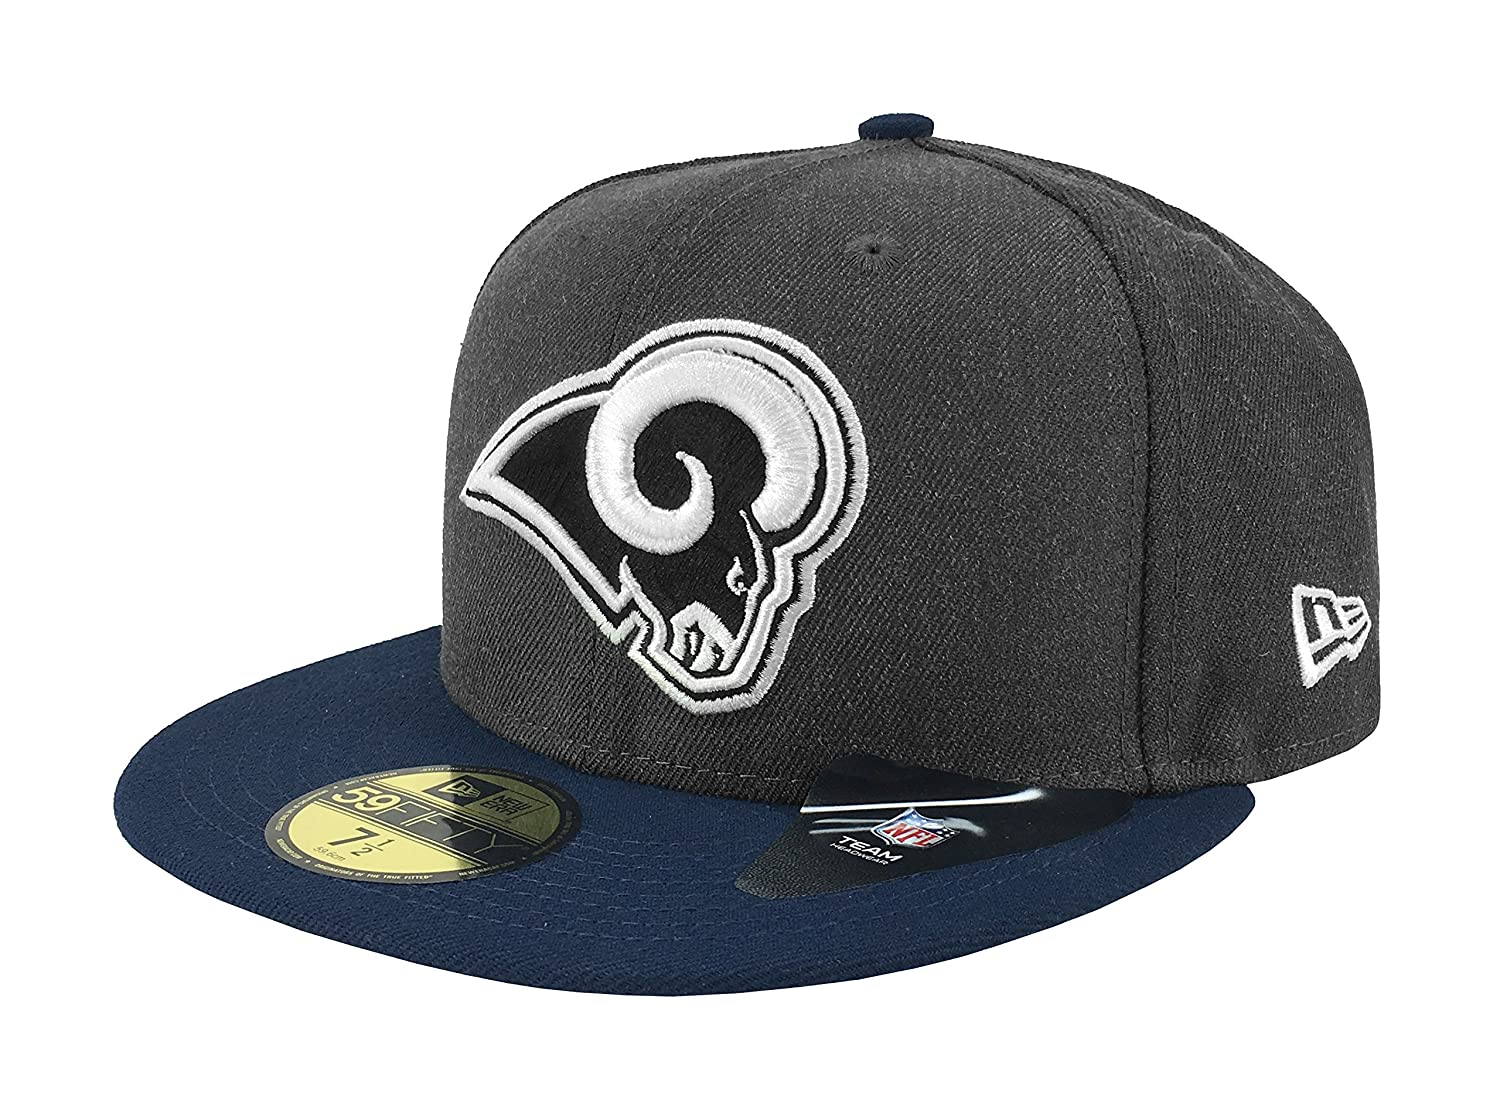 super popular d33be f7d25 New Era 59Fifty Hat NFL Los Angeles Rams Shader Melt 2 Charcoal Navy Blue  Cap at Amazon Men s Clothing store